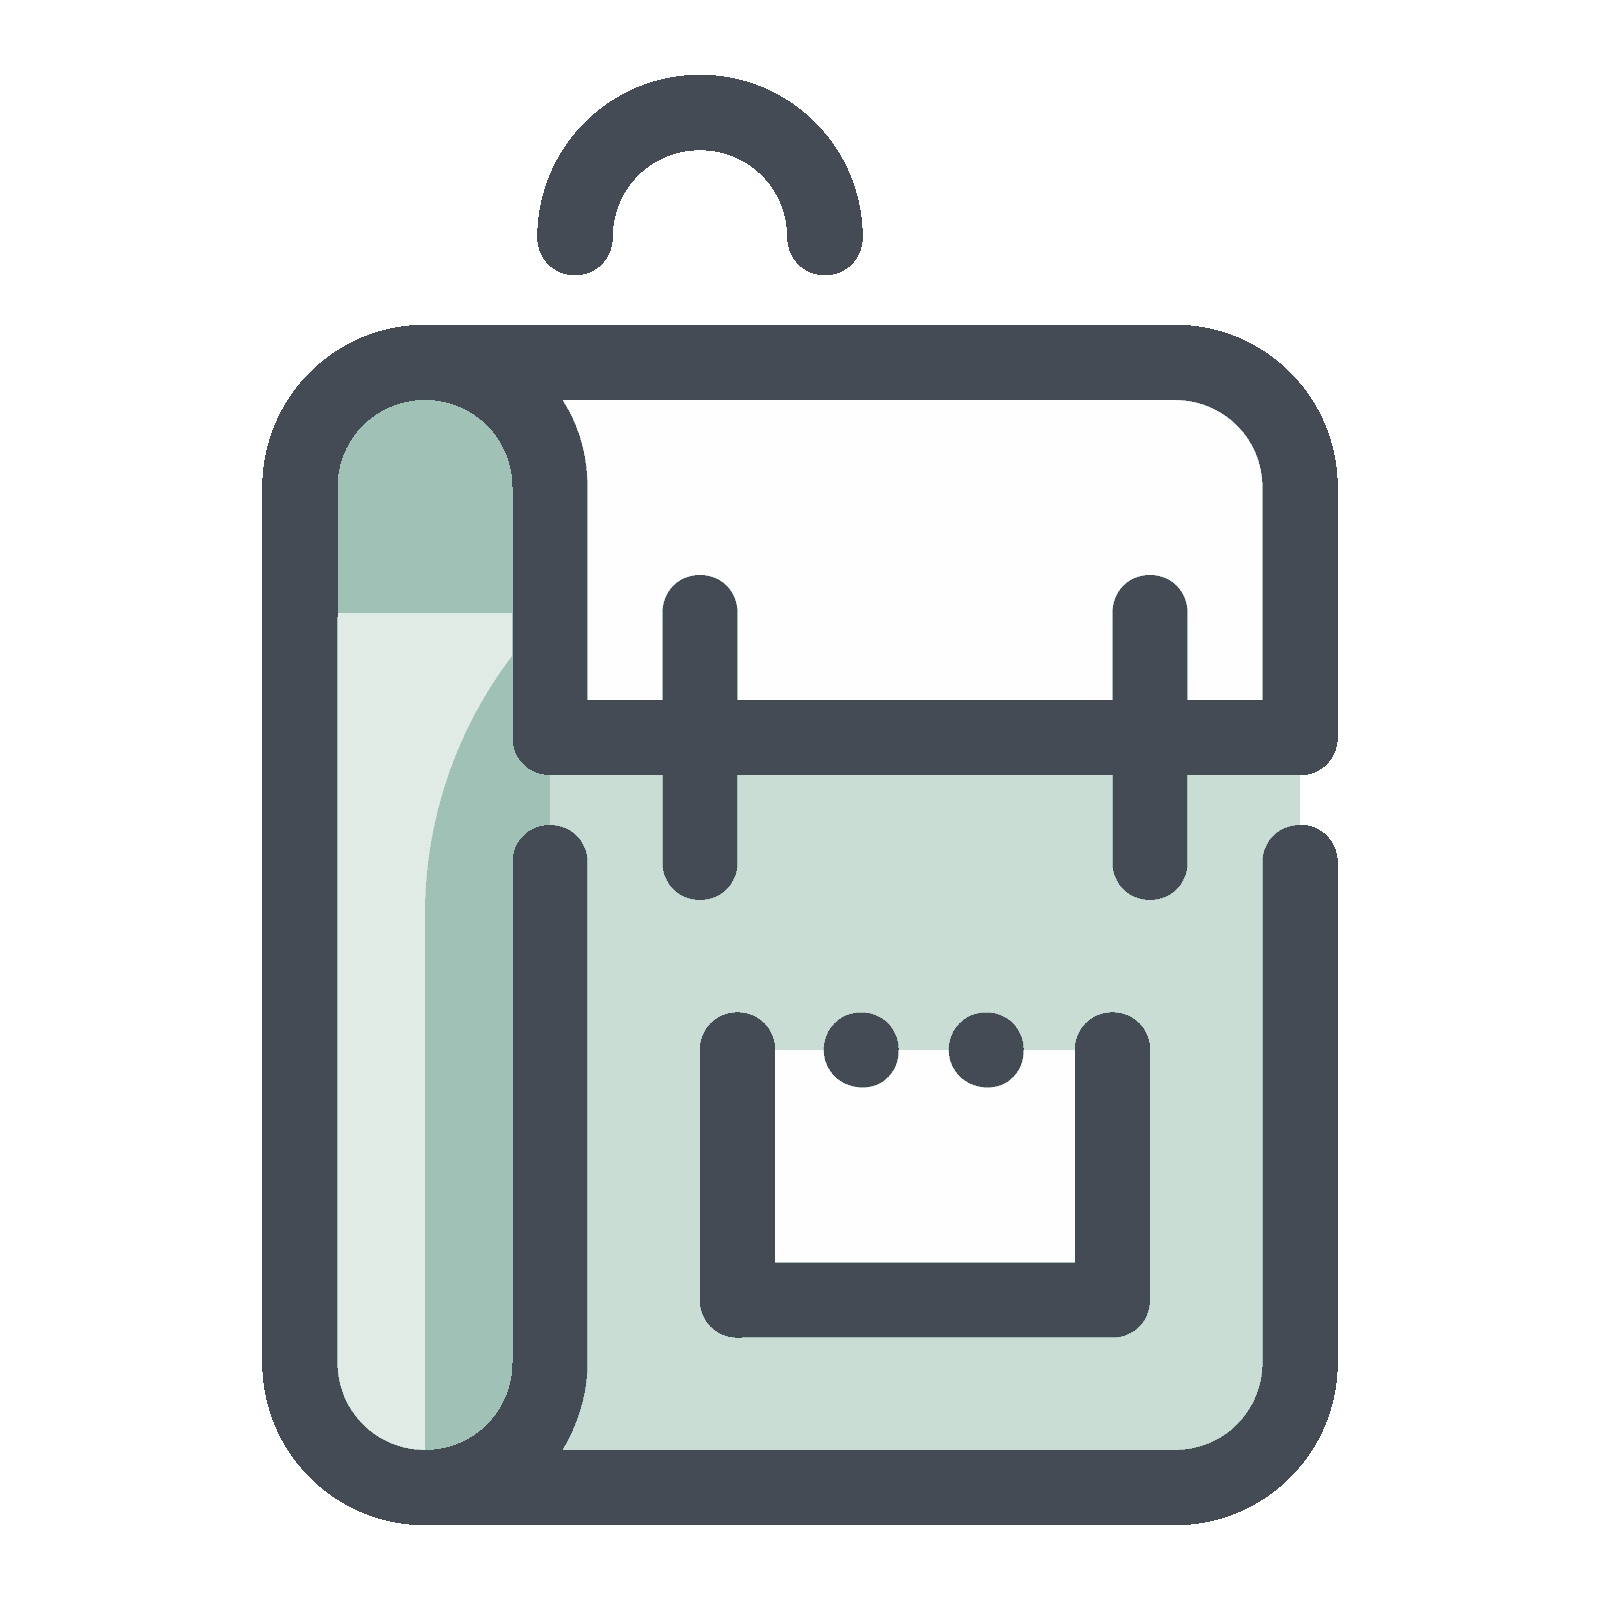 Icon free download png. Clipart backpack vector